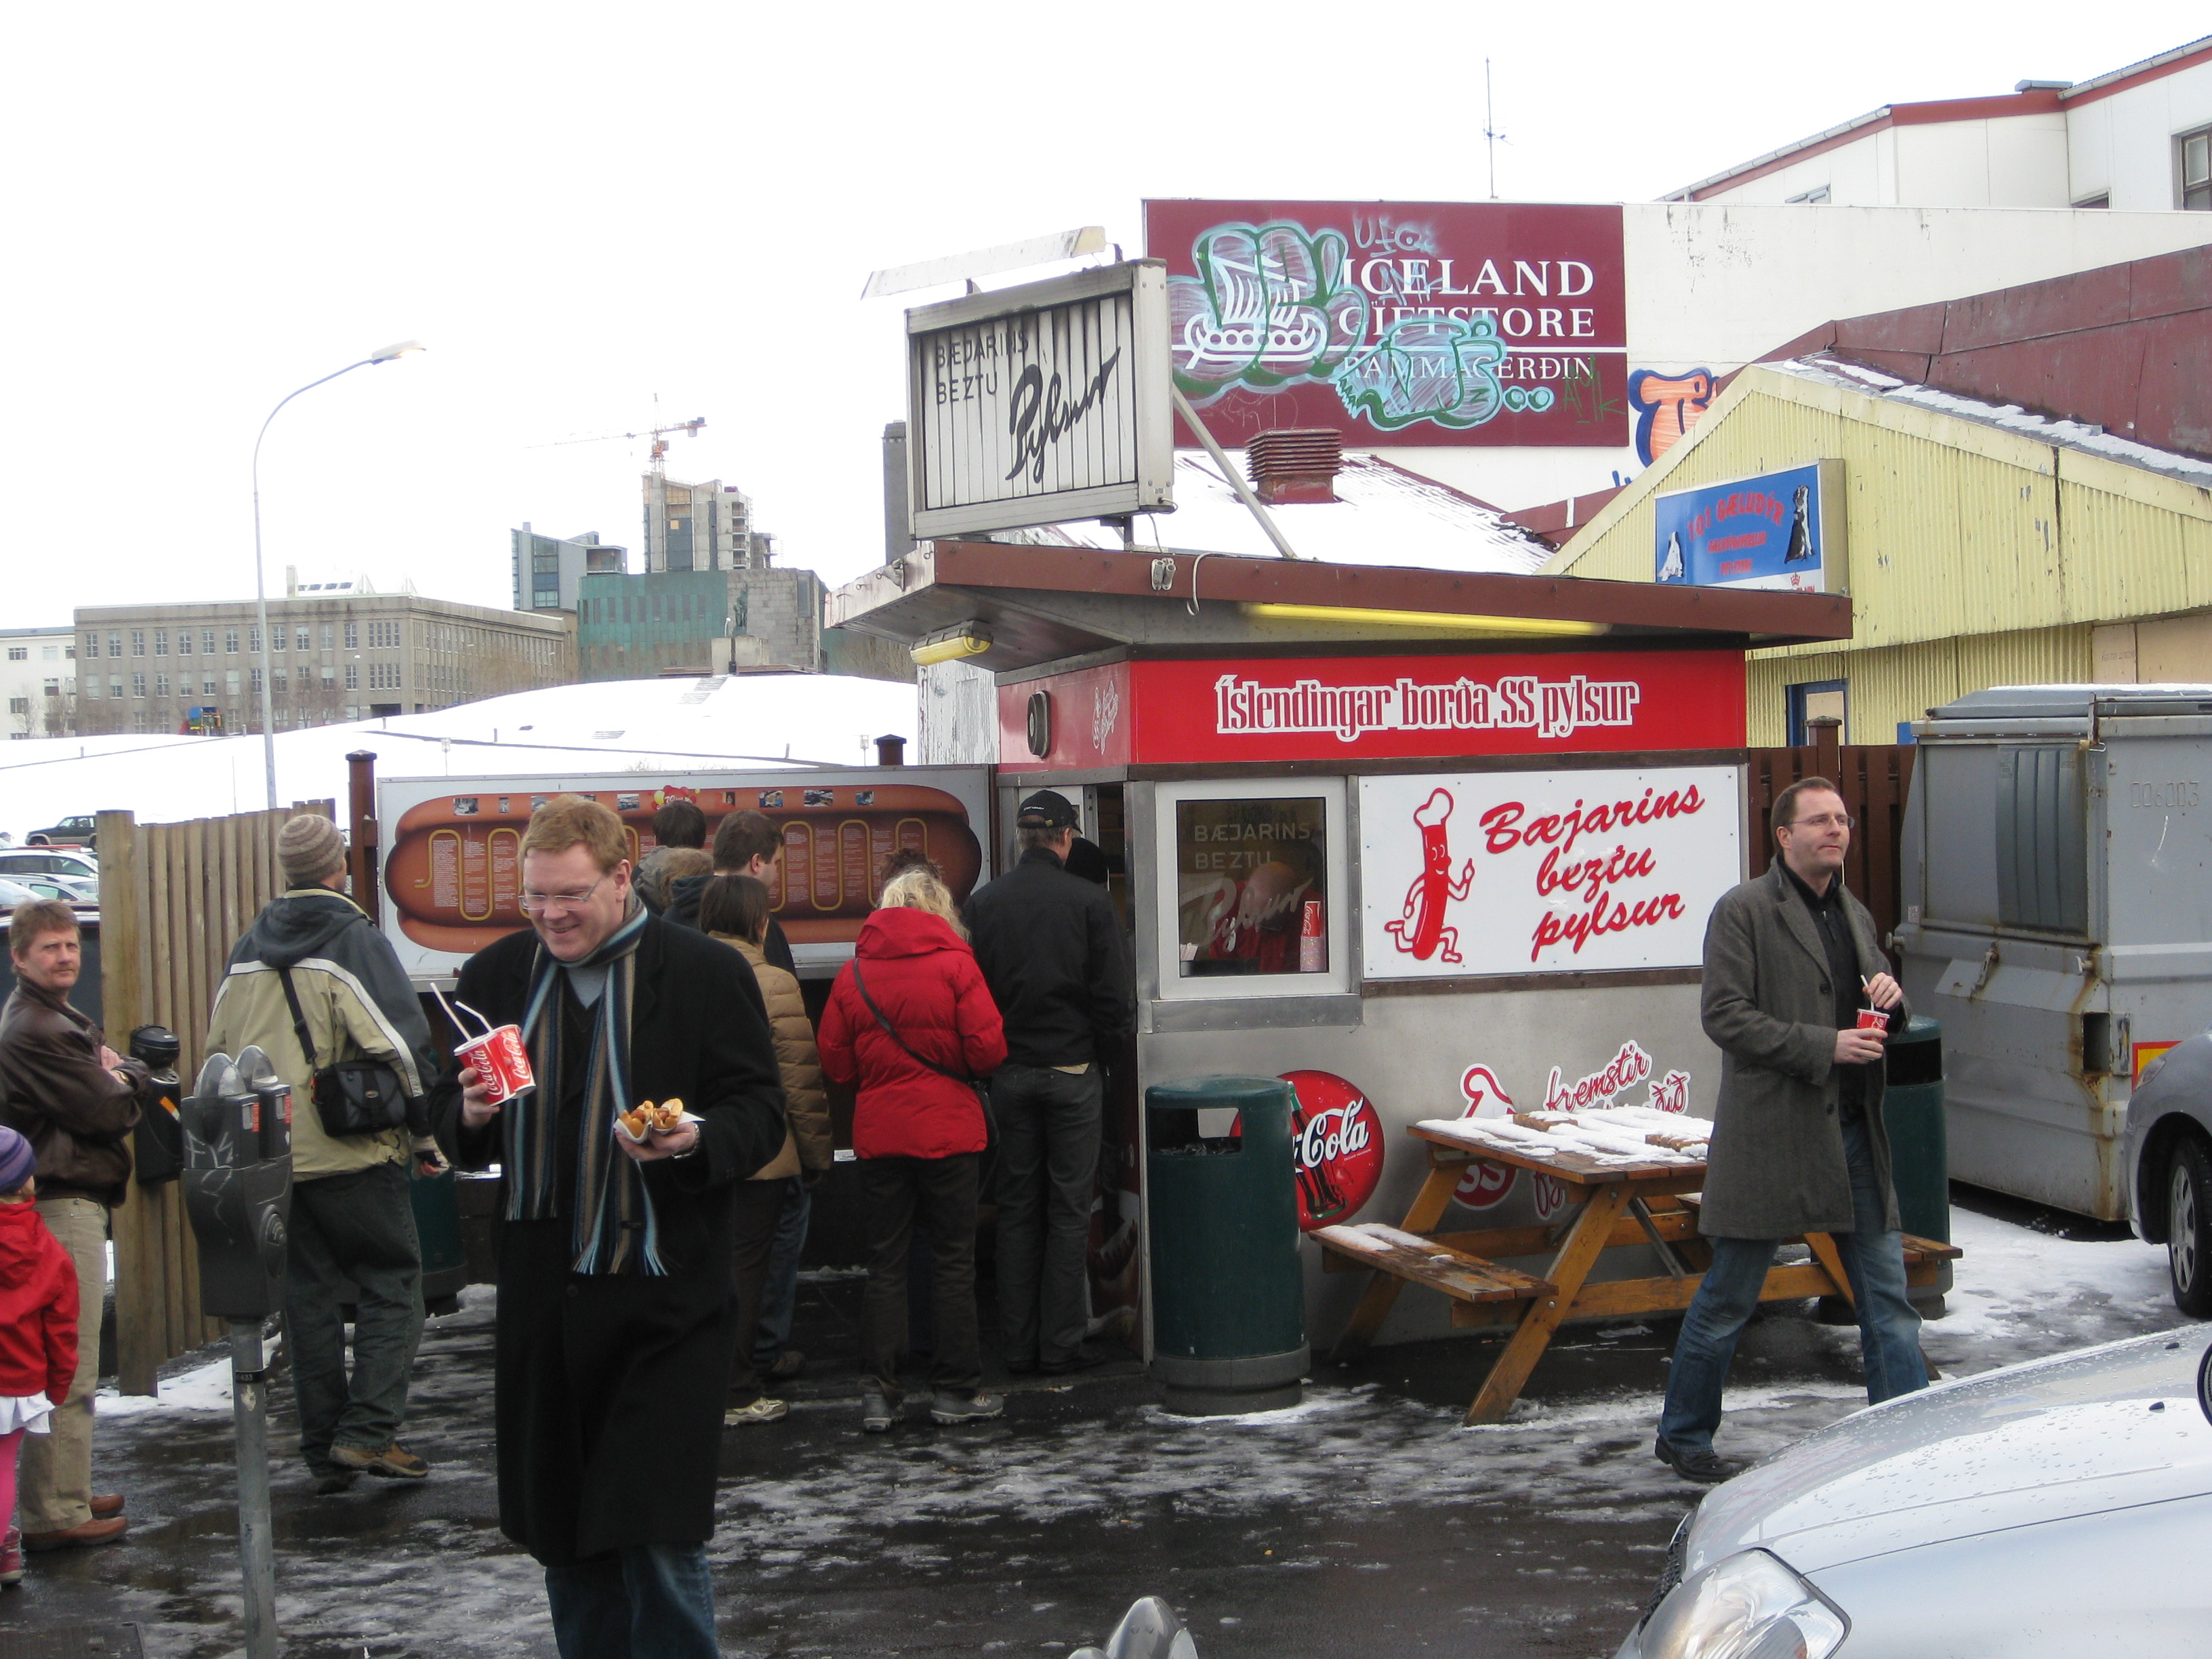 Iceland just can't get enough of these above-average hot dogs.